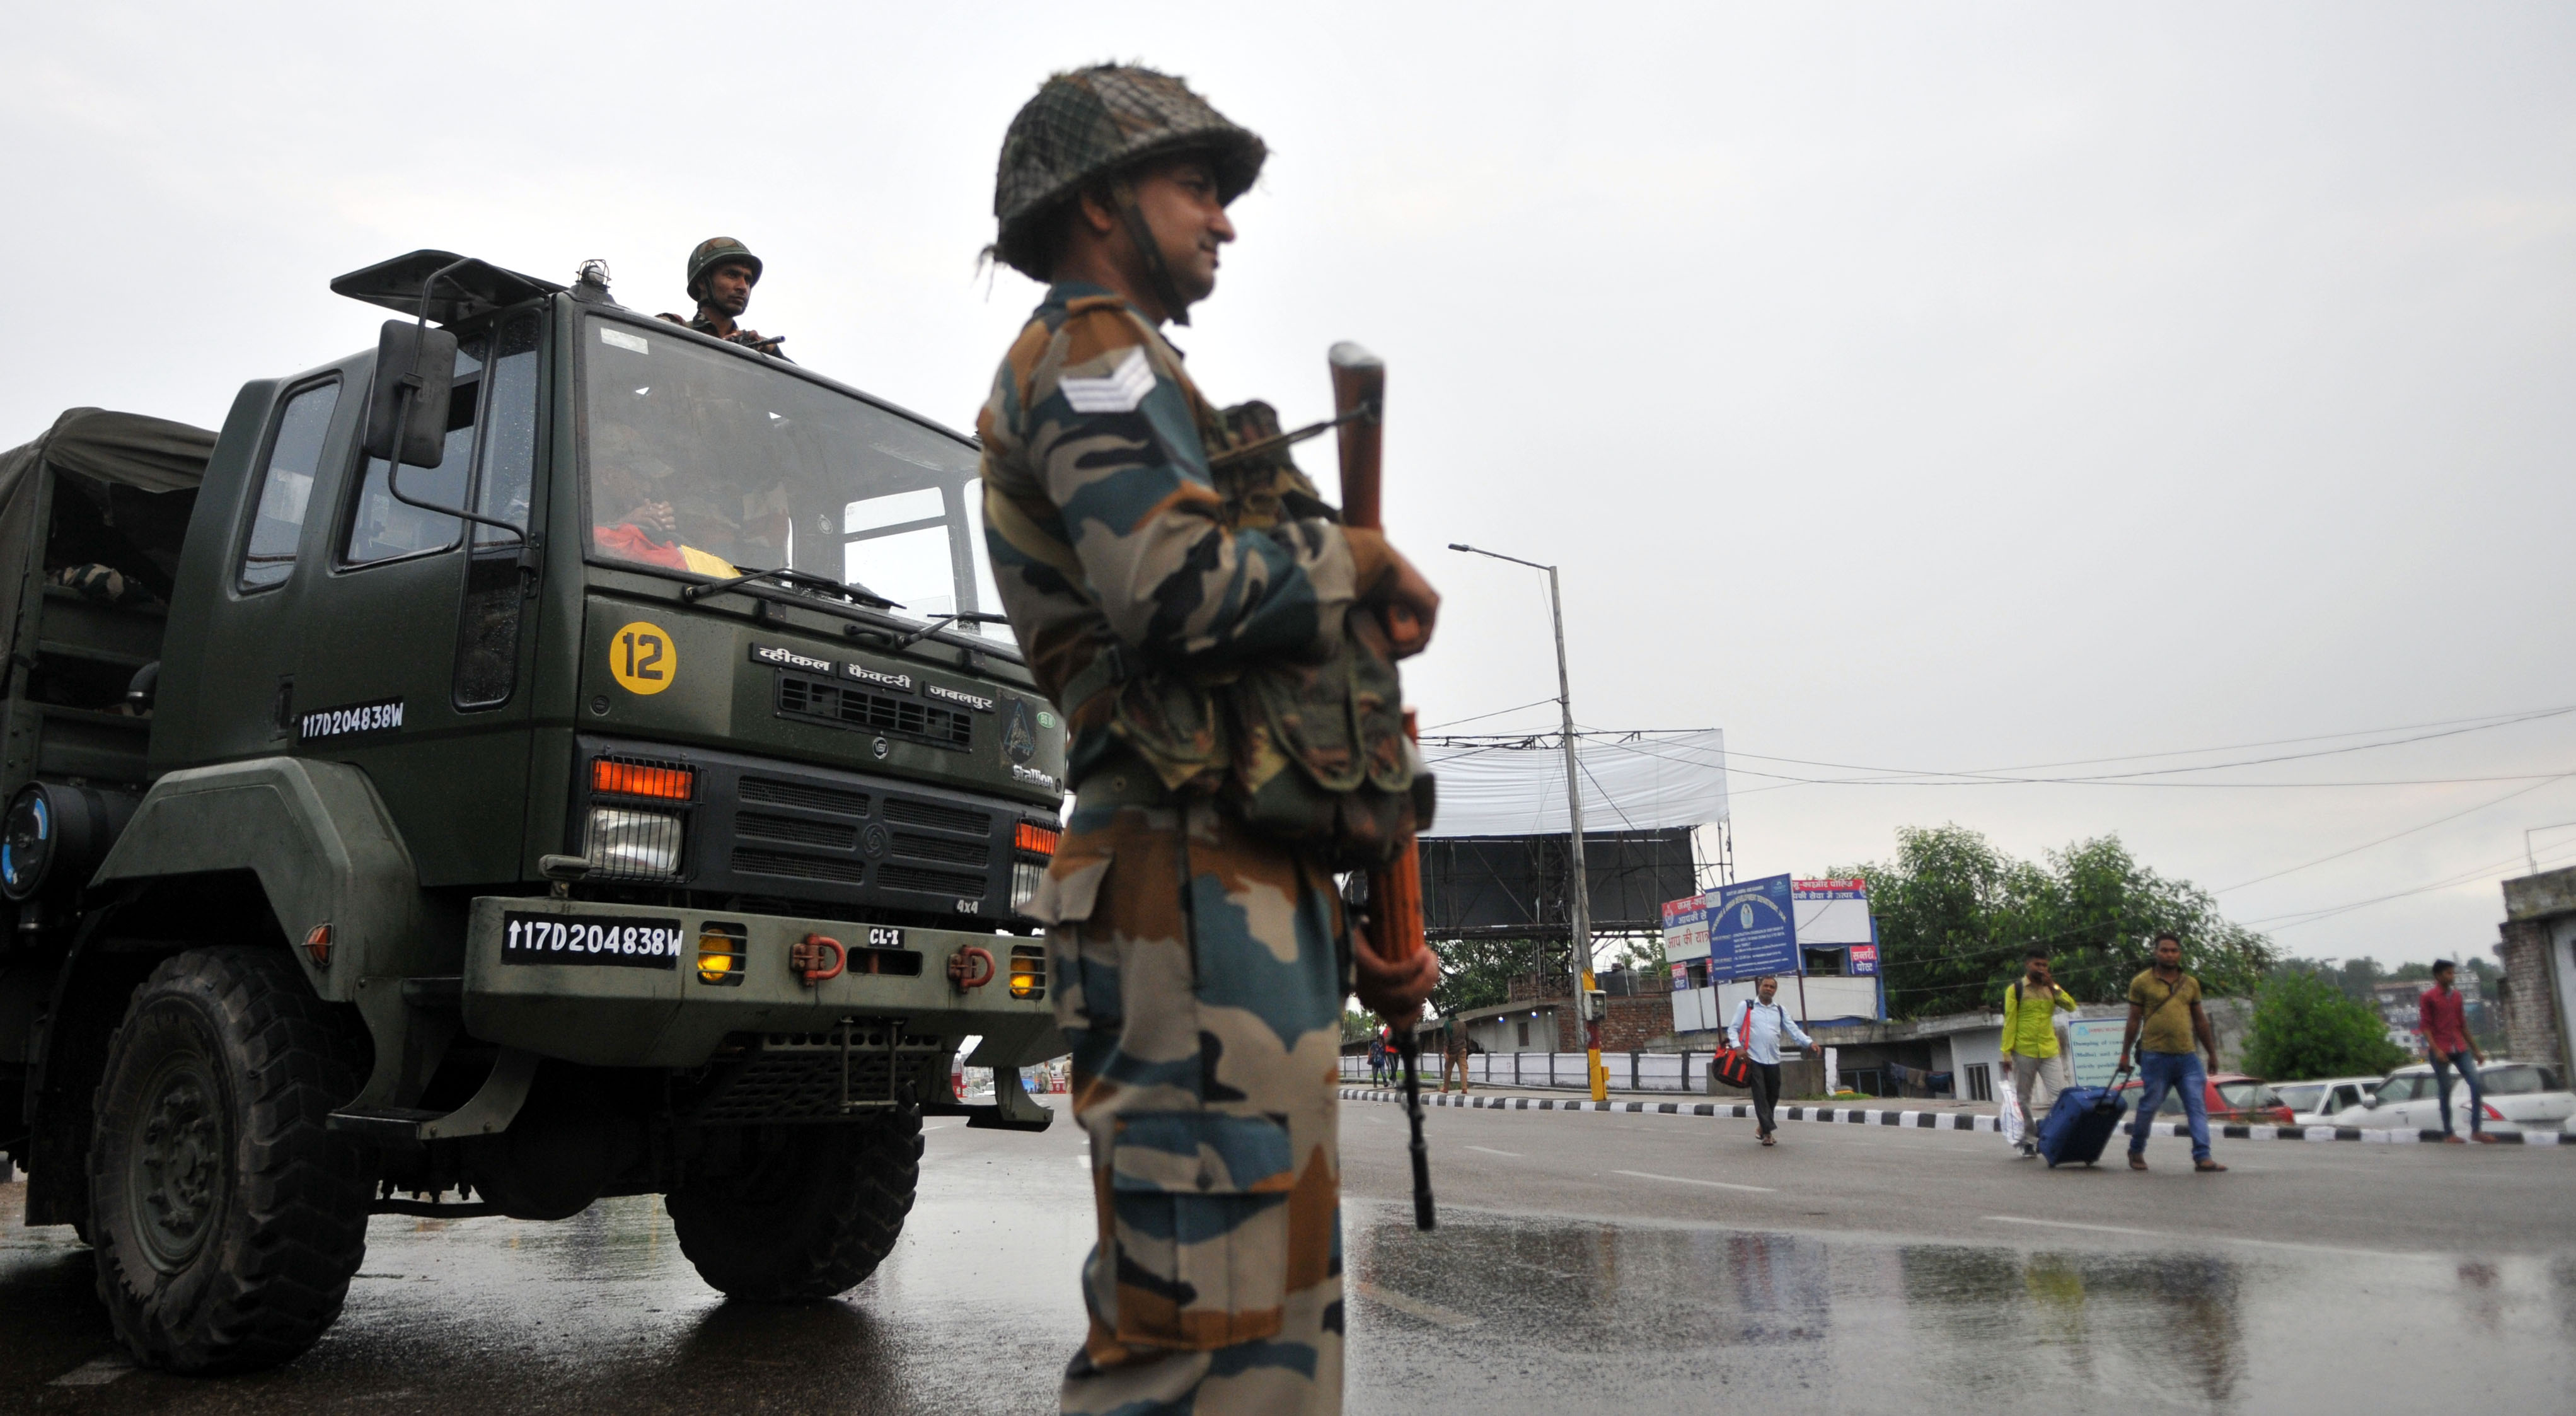 Extra troops are in India-administered Kashmir to quell potential unrest after New Delhi moved to strip the region of many of its autonomies.